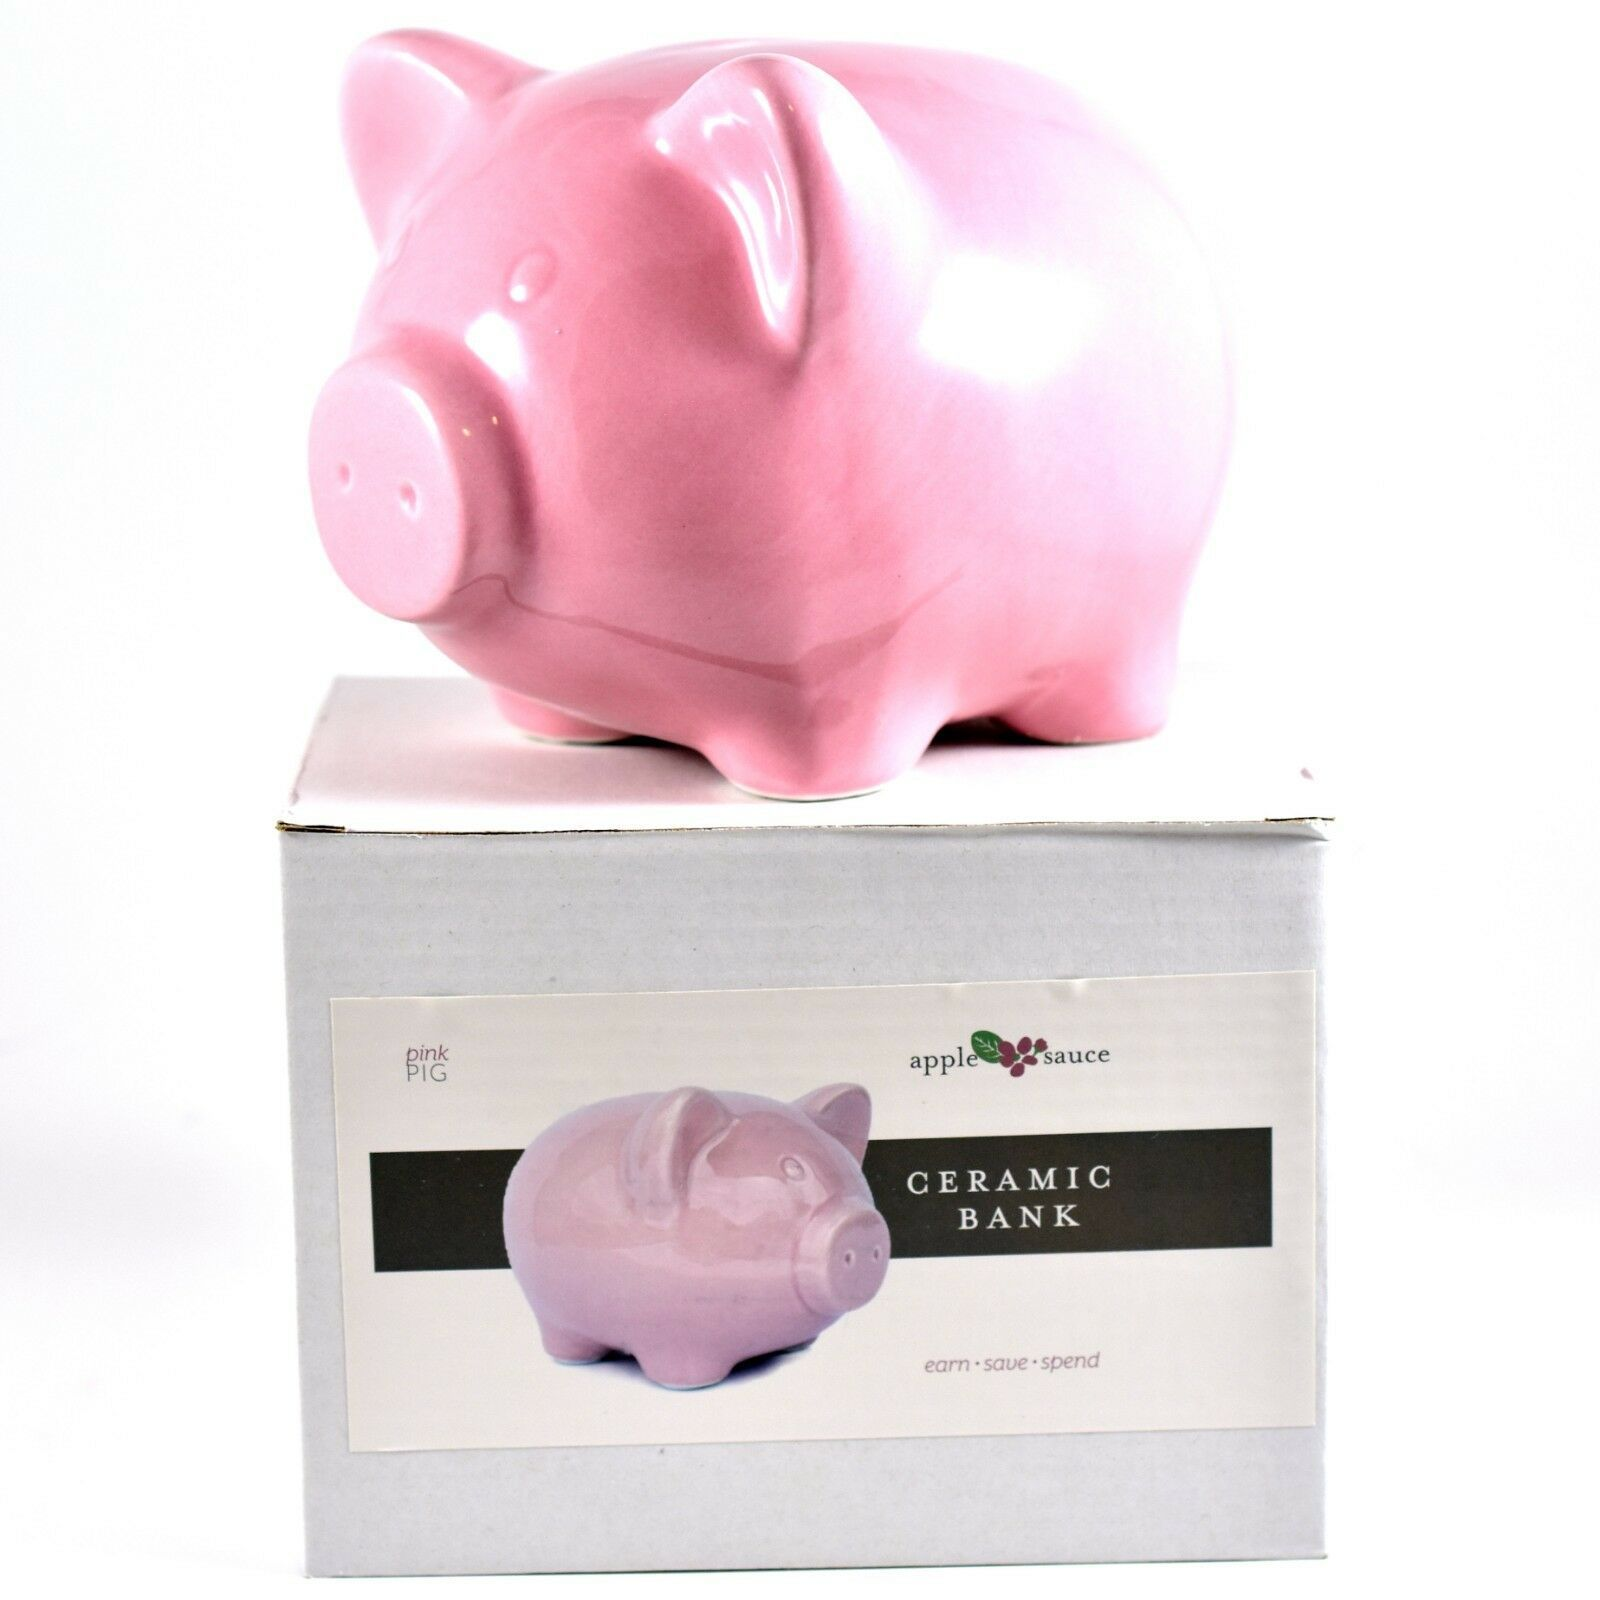 Applesauce Pink Pig Baby Ceramic Still Piggy Savings Bank